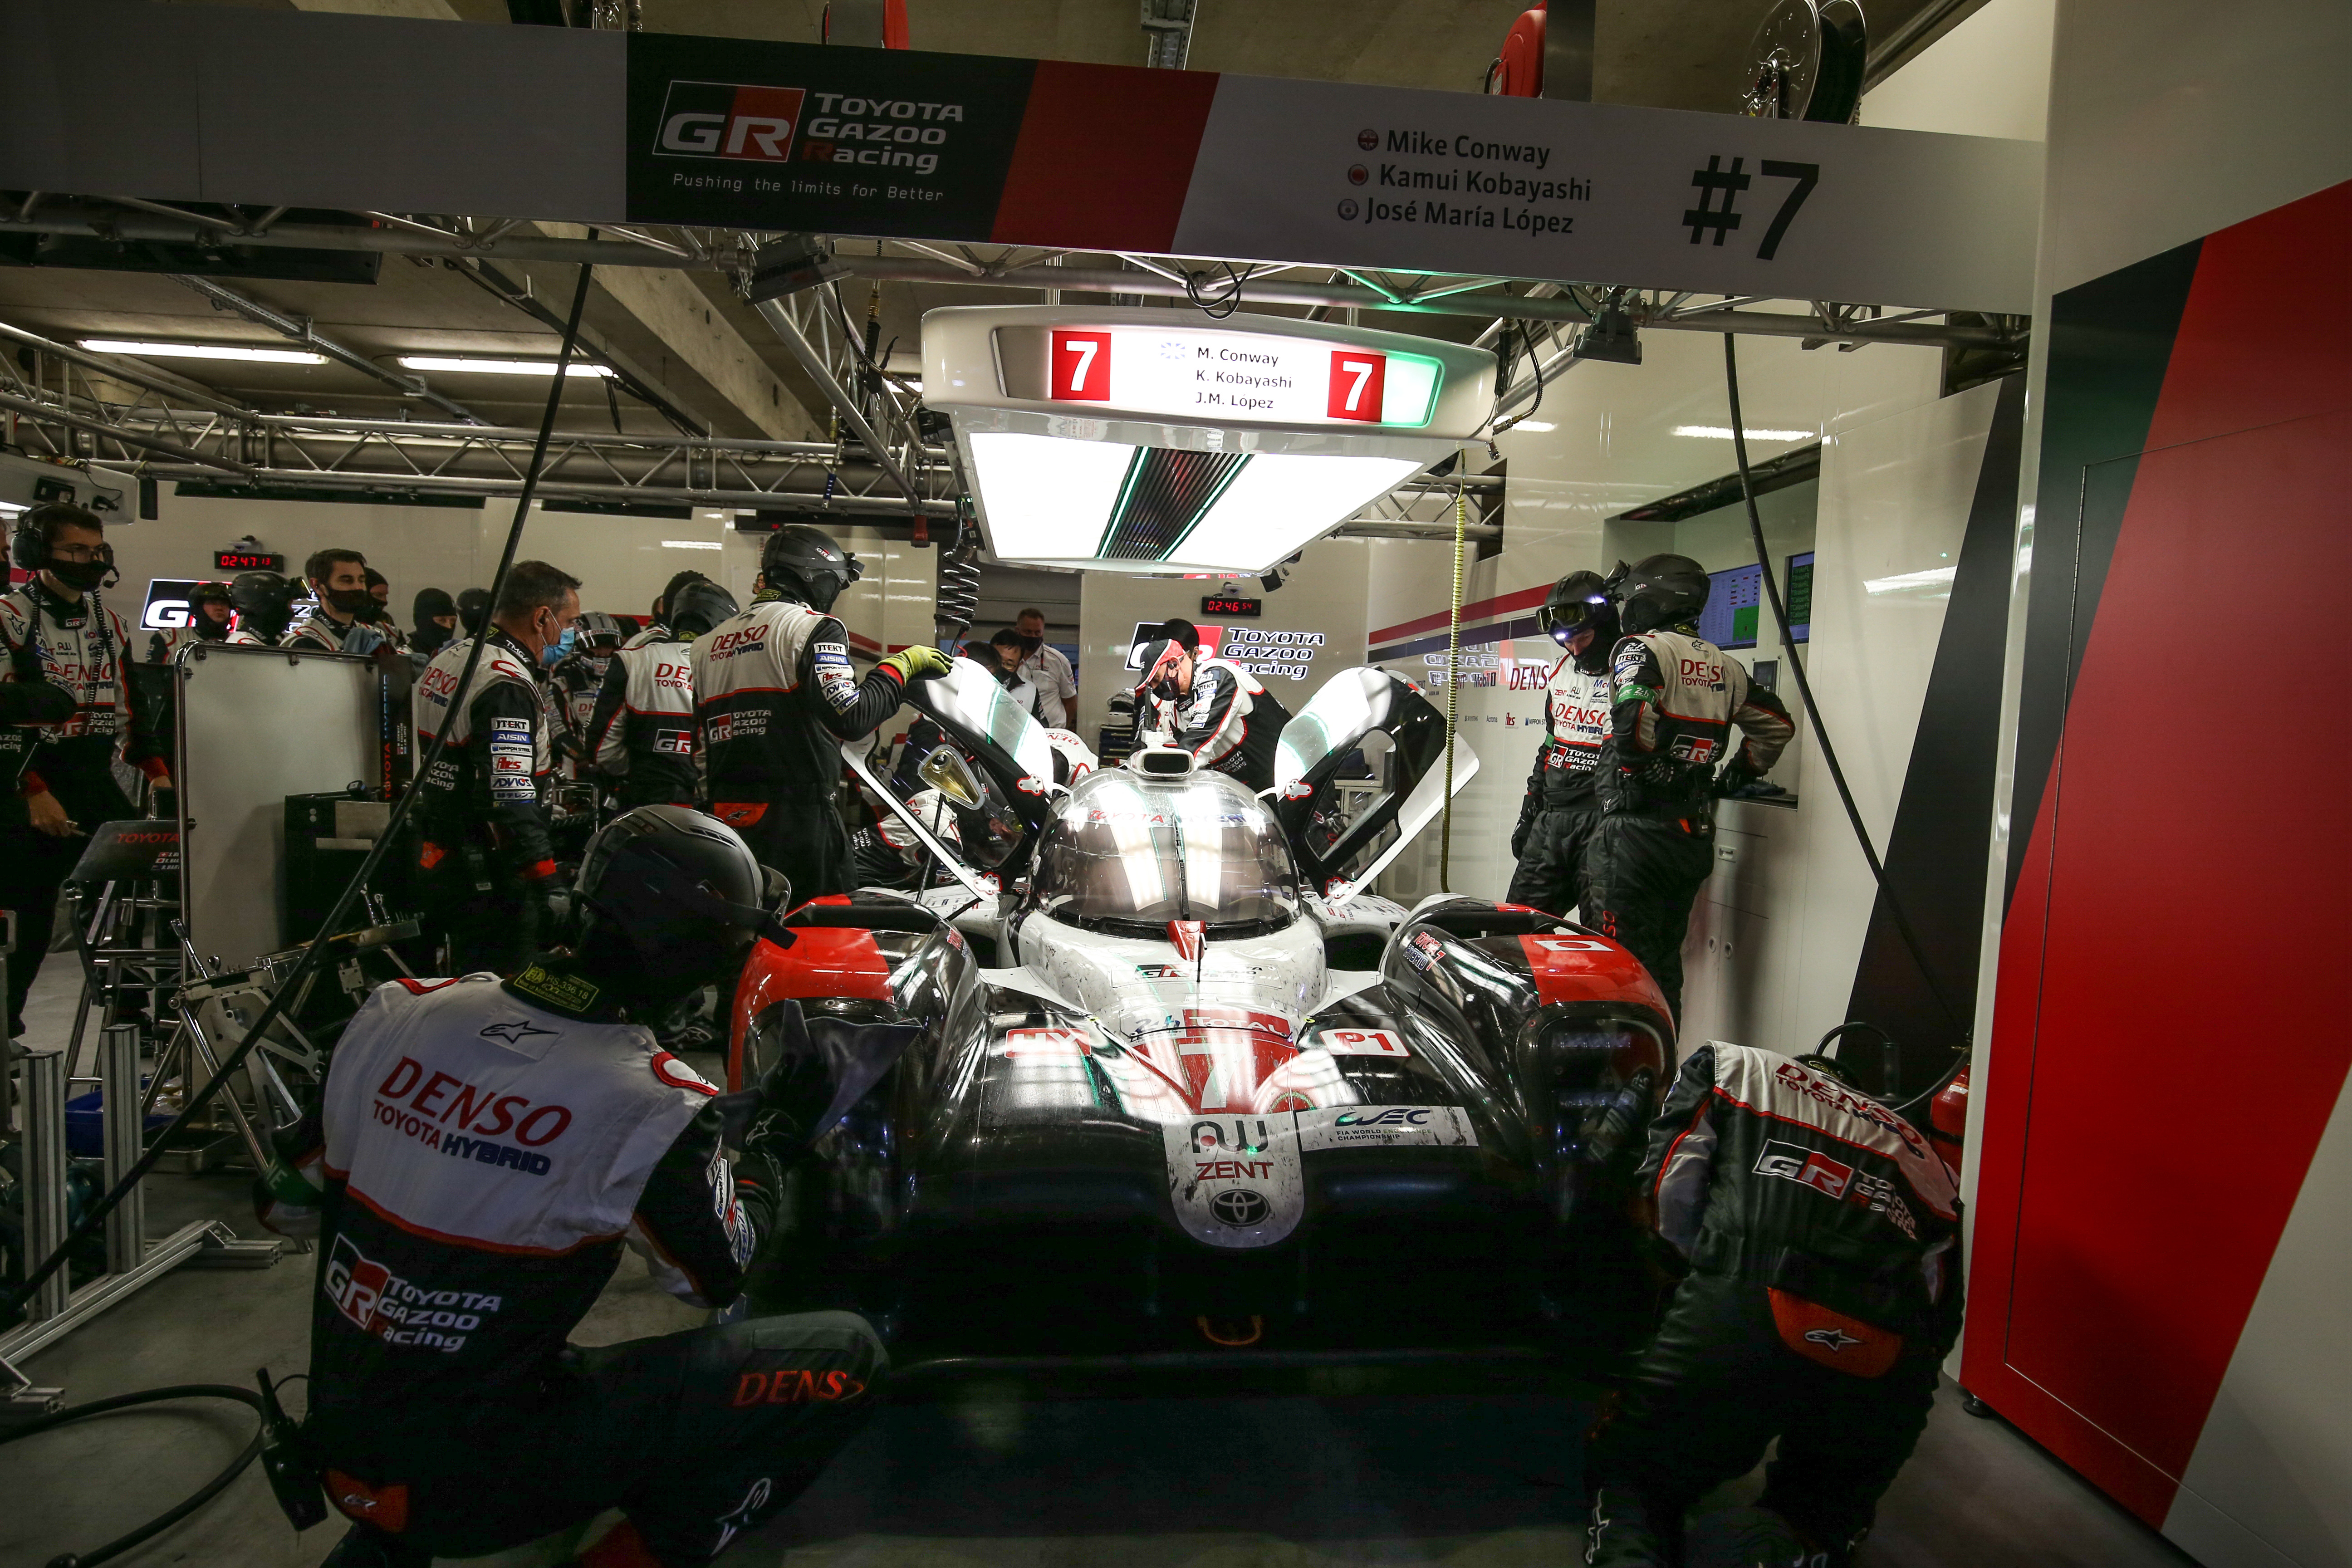 Toyota in garage Le Mans 24 Hours 2020